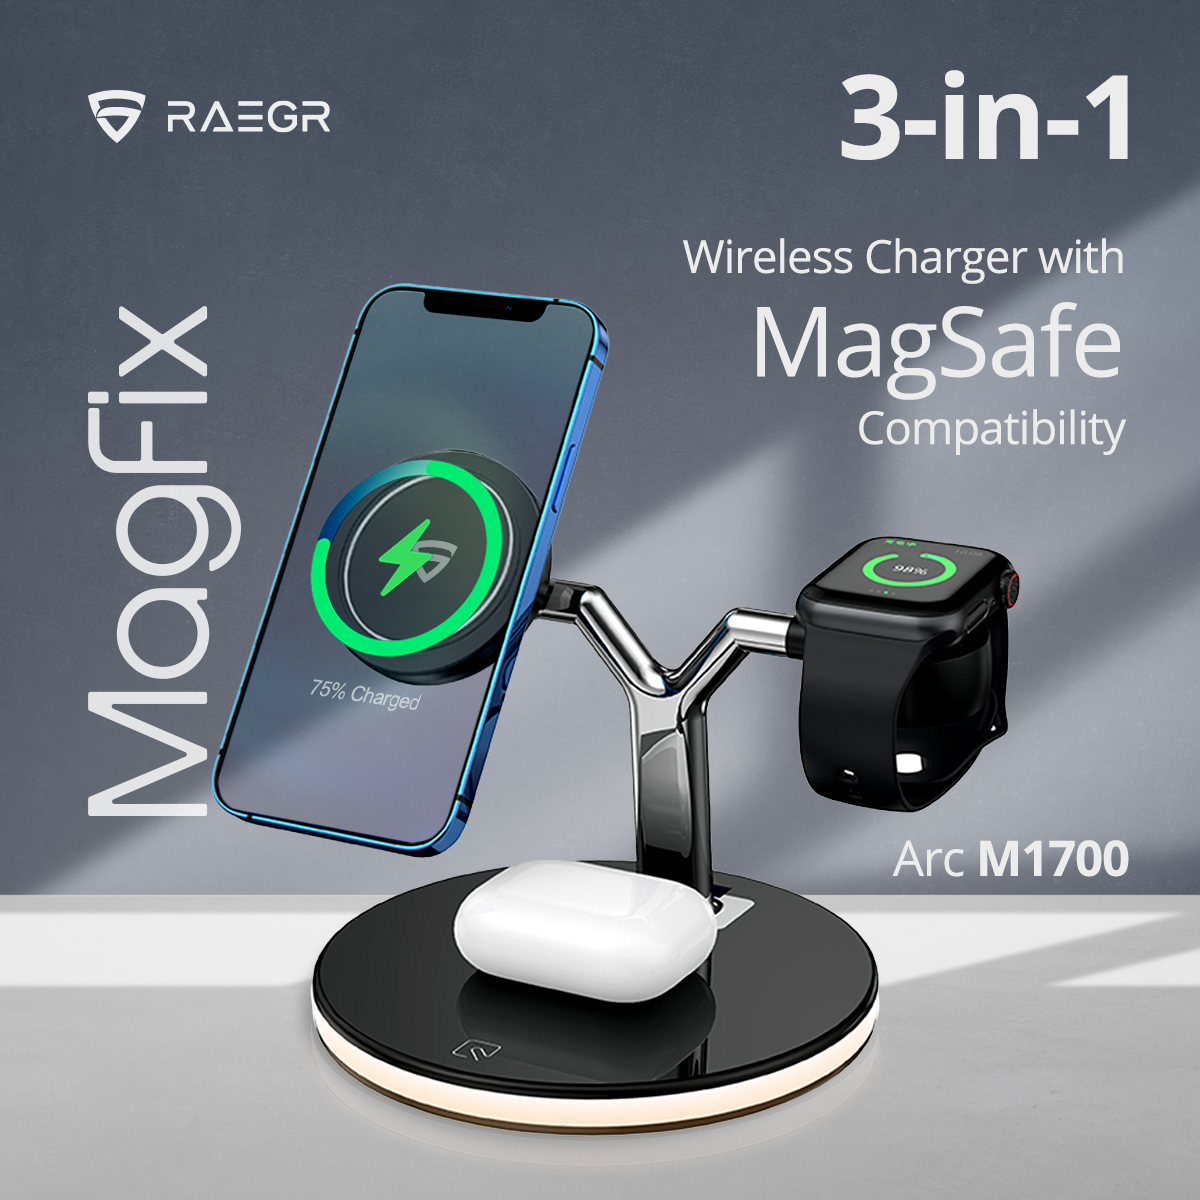 RAEGR launches 'MagFix Trio Arc M1700' – a 3-in-1 charging station for Apple devices